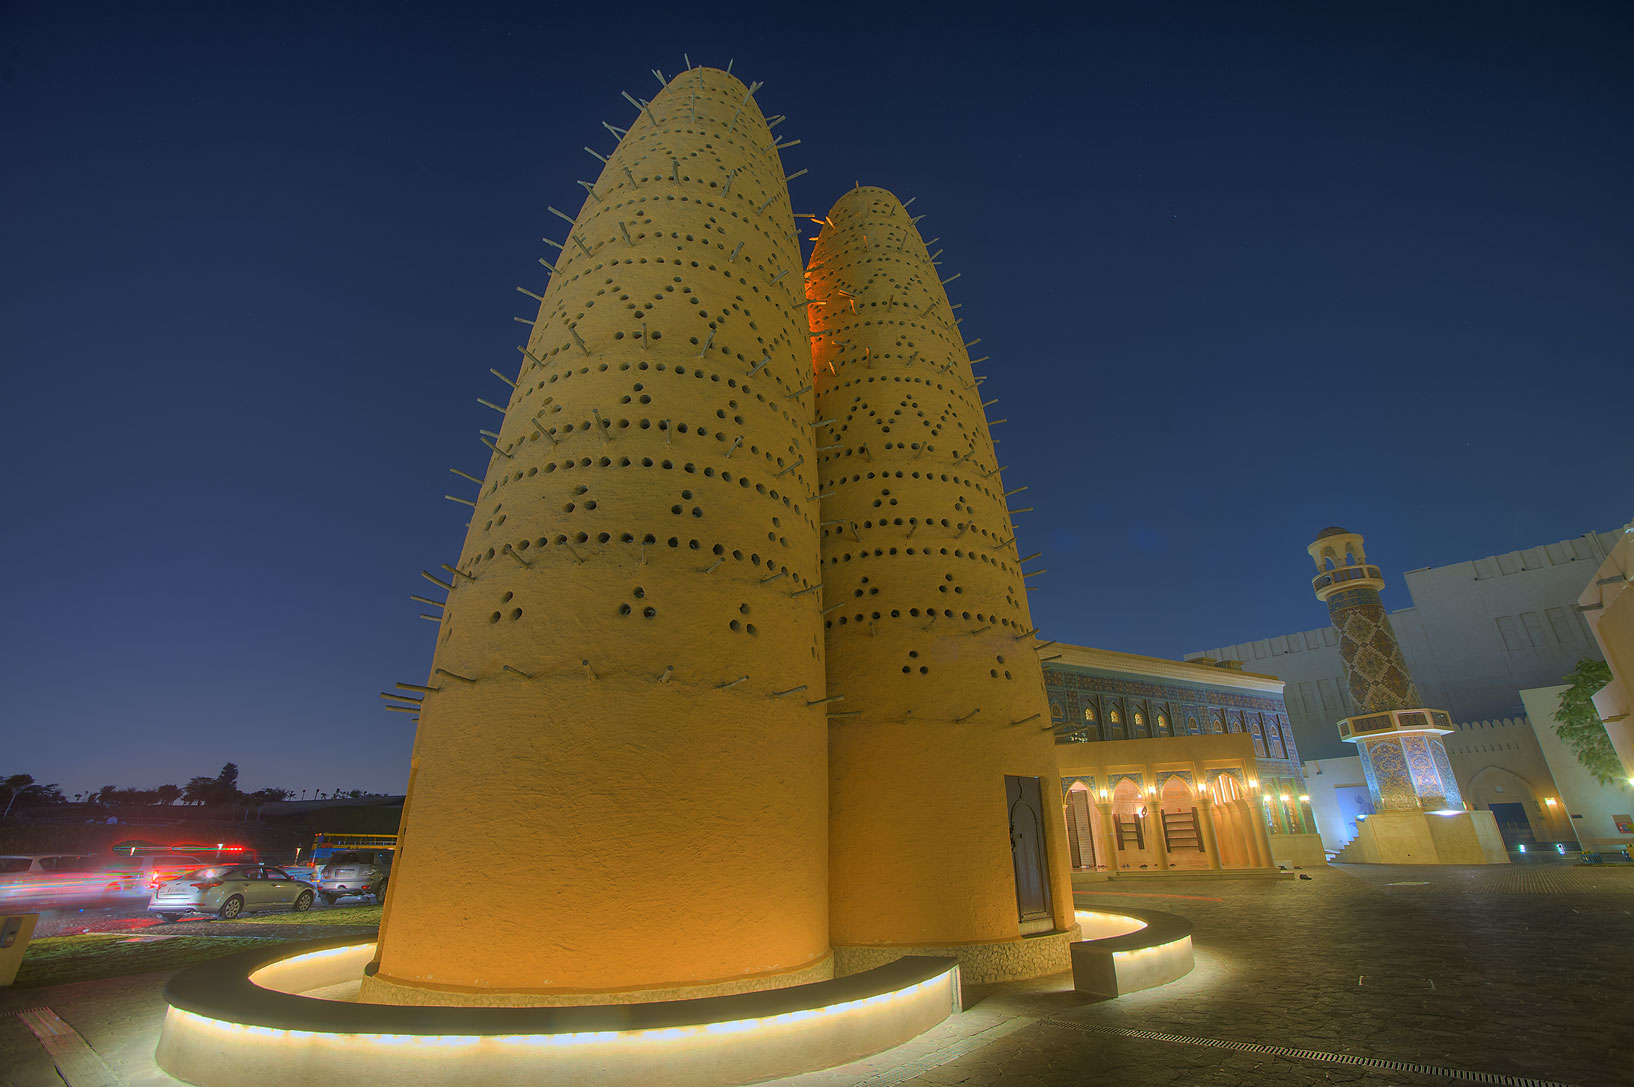 Pigeon house (dovecot) in Katara Cultural Village. Doha, Qatar